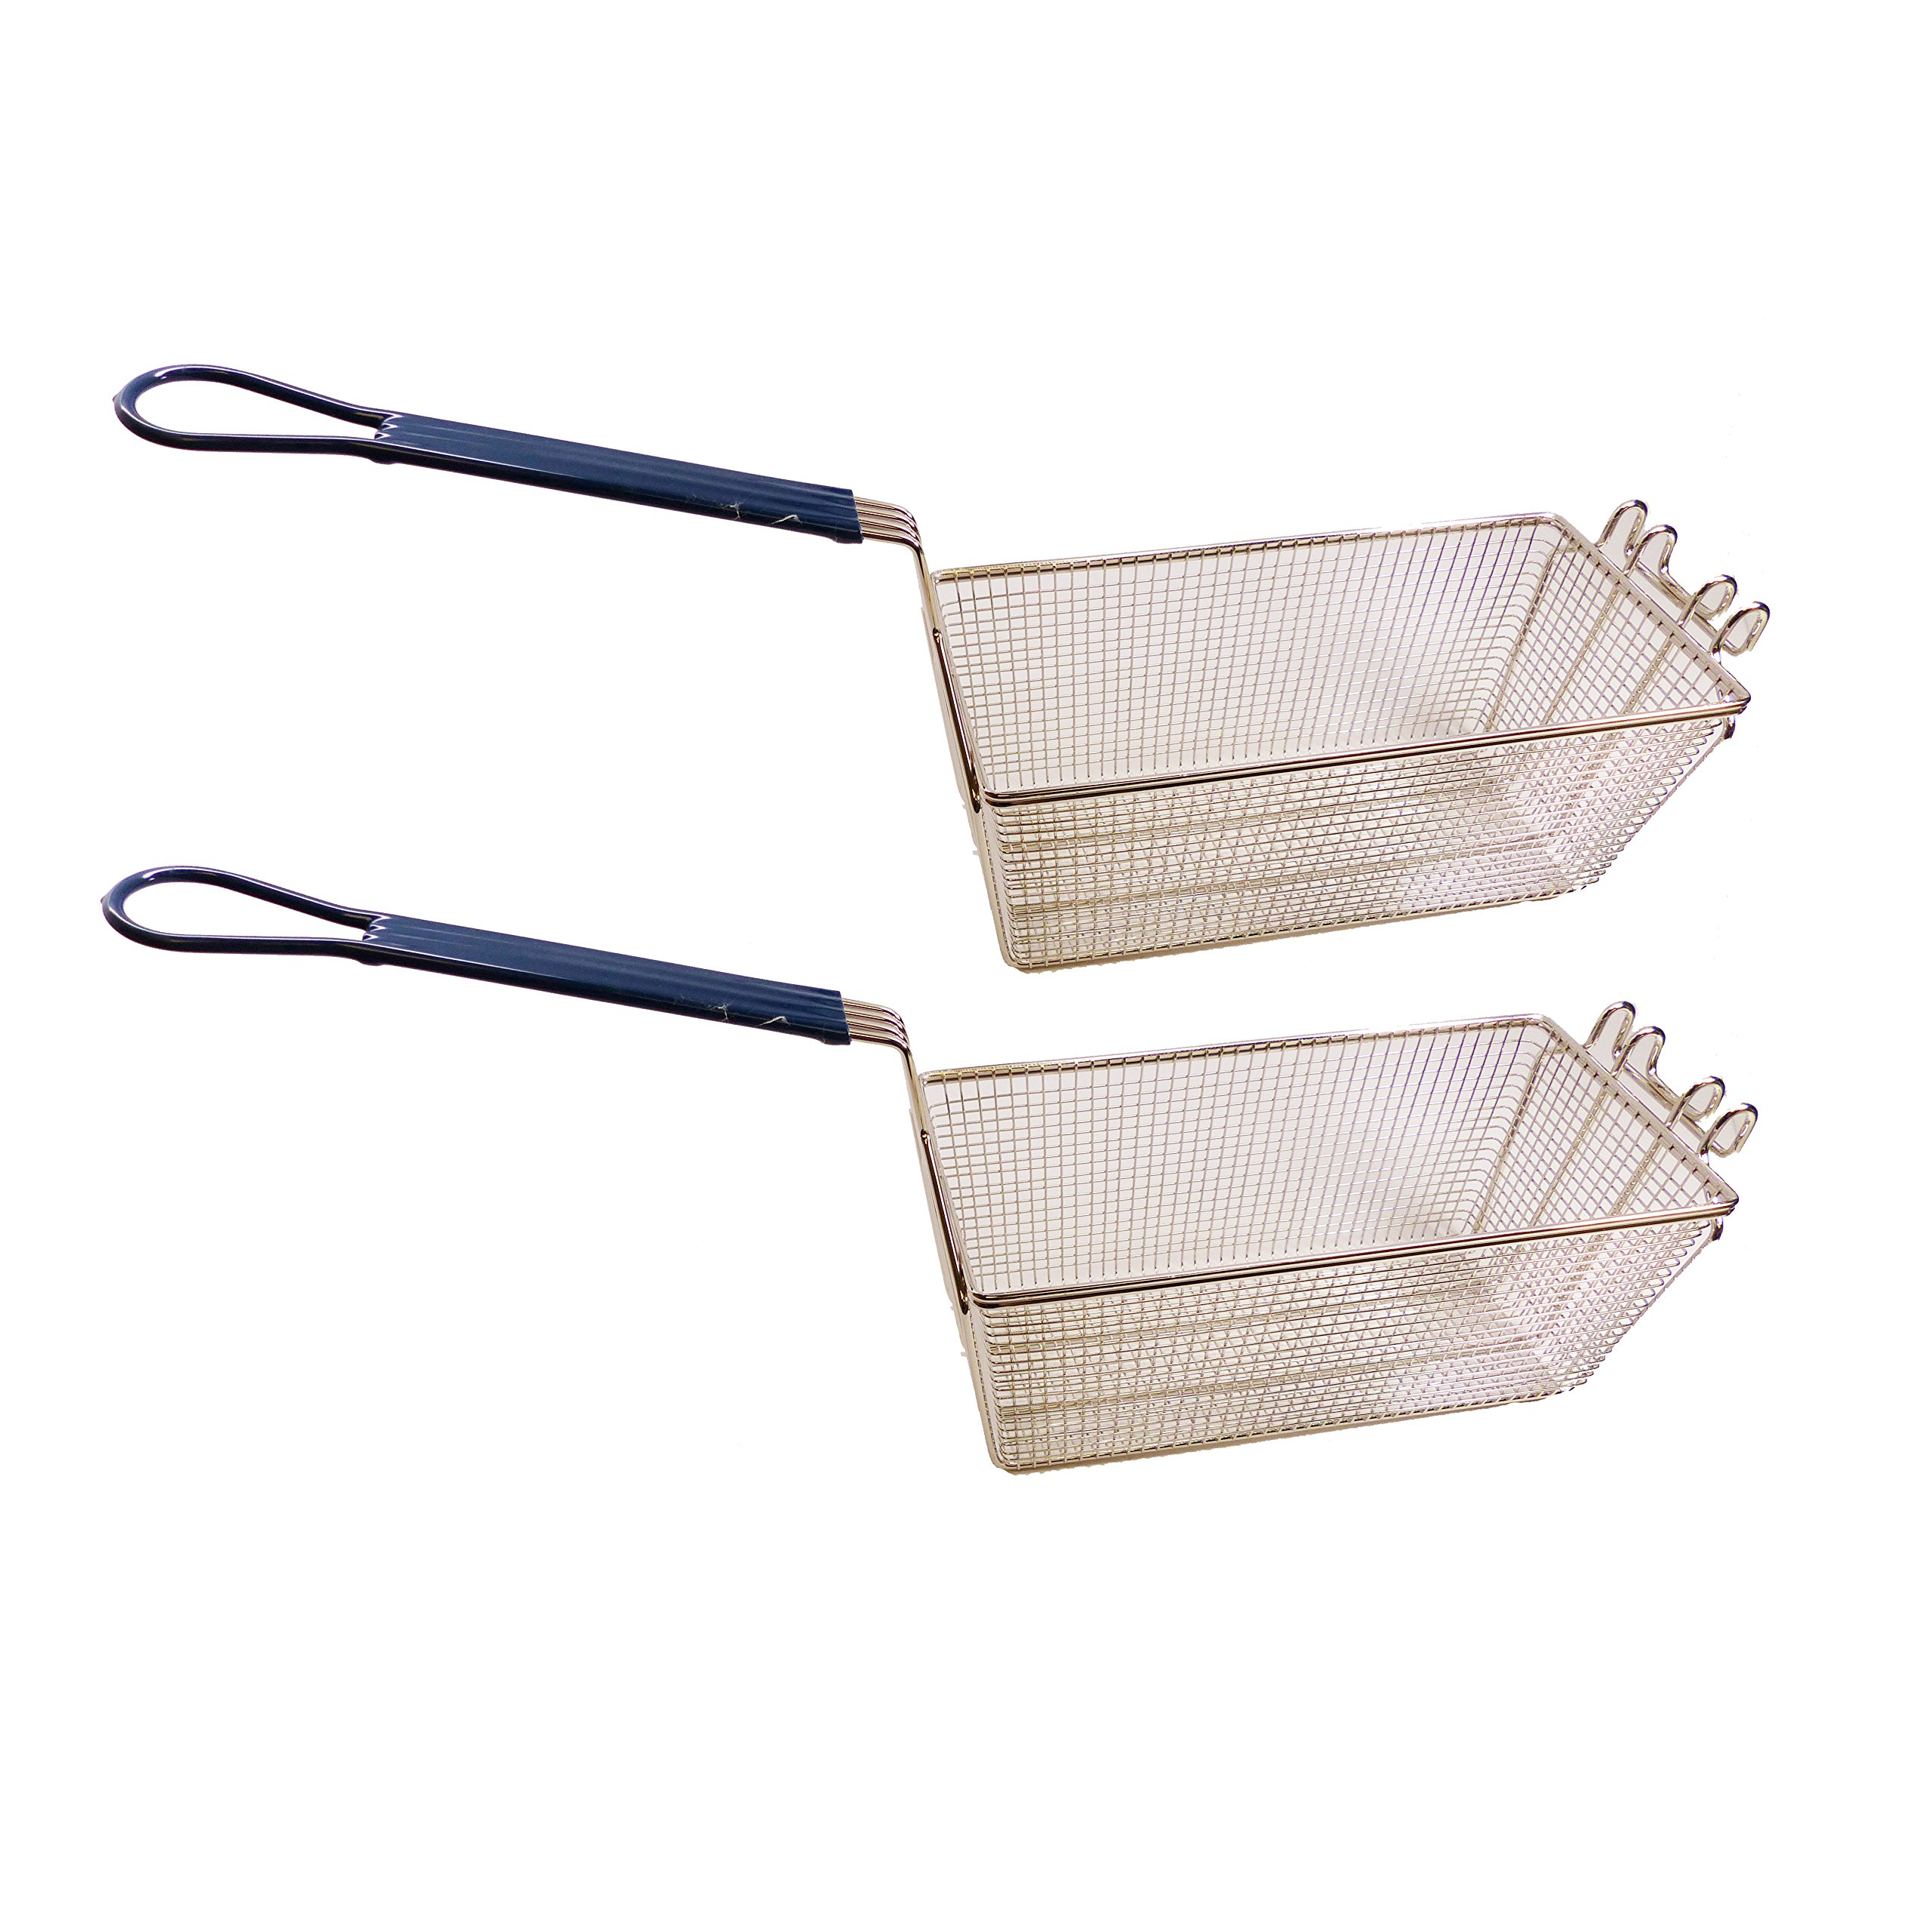 2-Pack Rustproof Heavy Duty Deep Fryer Wire Basket Commercial Grade Replacements with Blue Handles